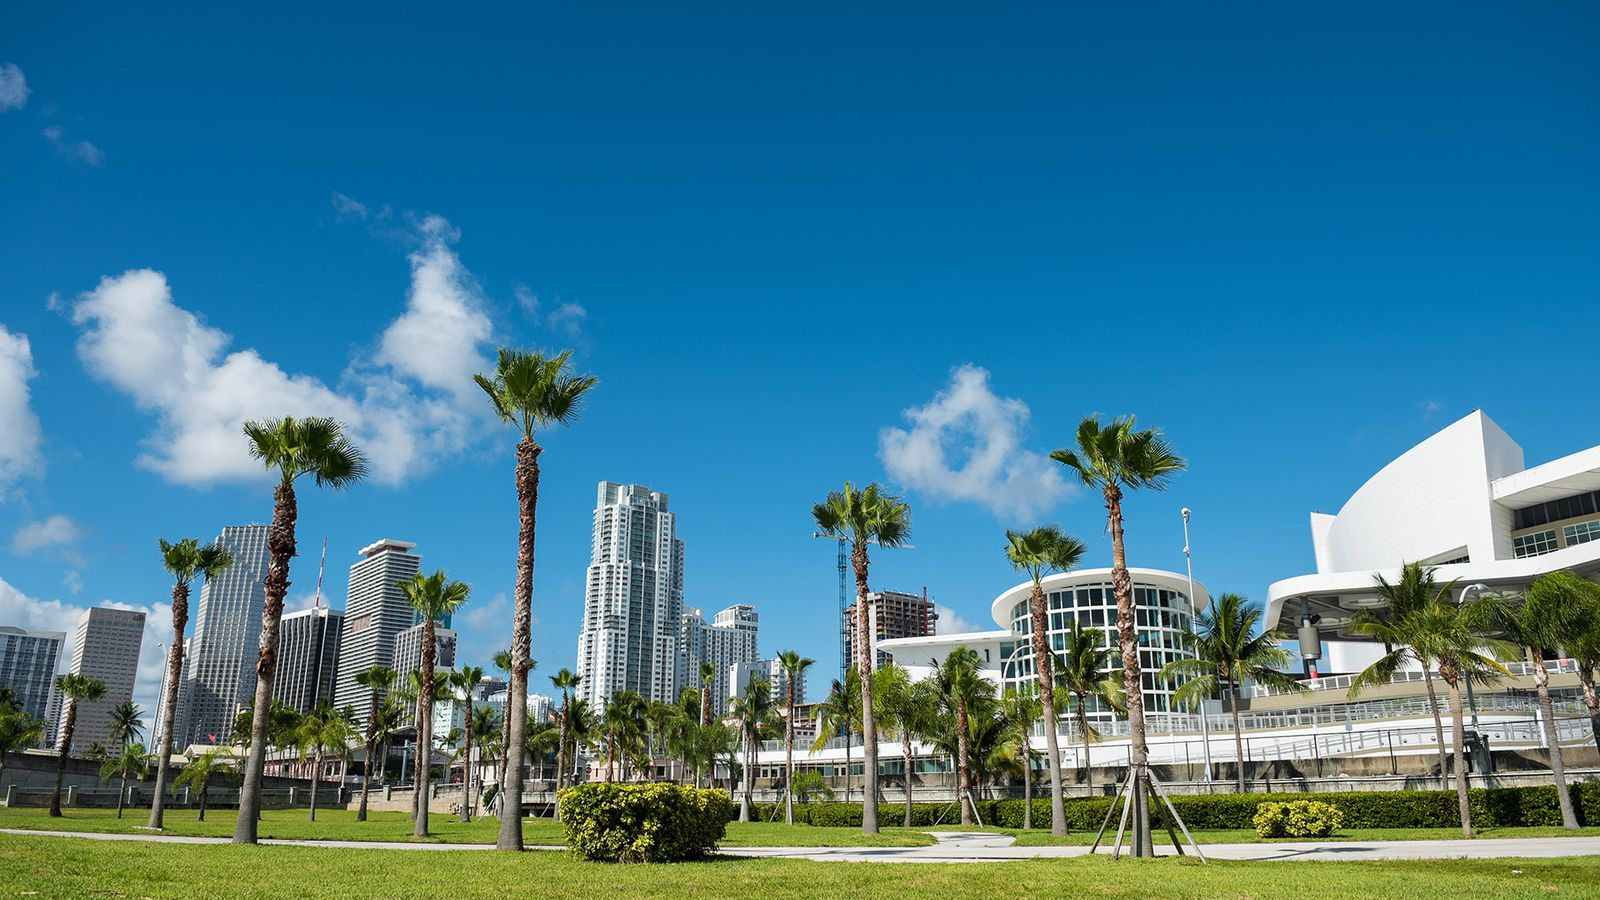 Downtown Miami Finally Gets Its Park Next To American